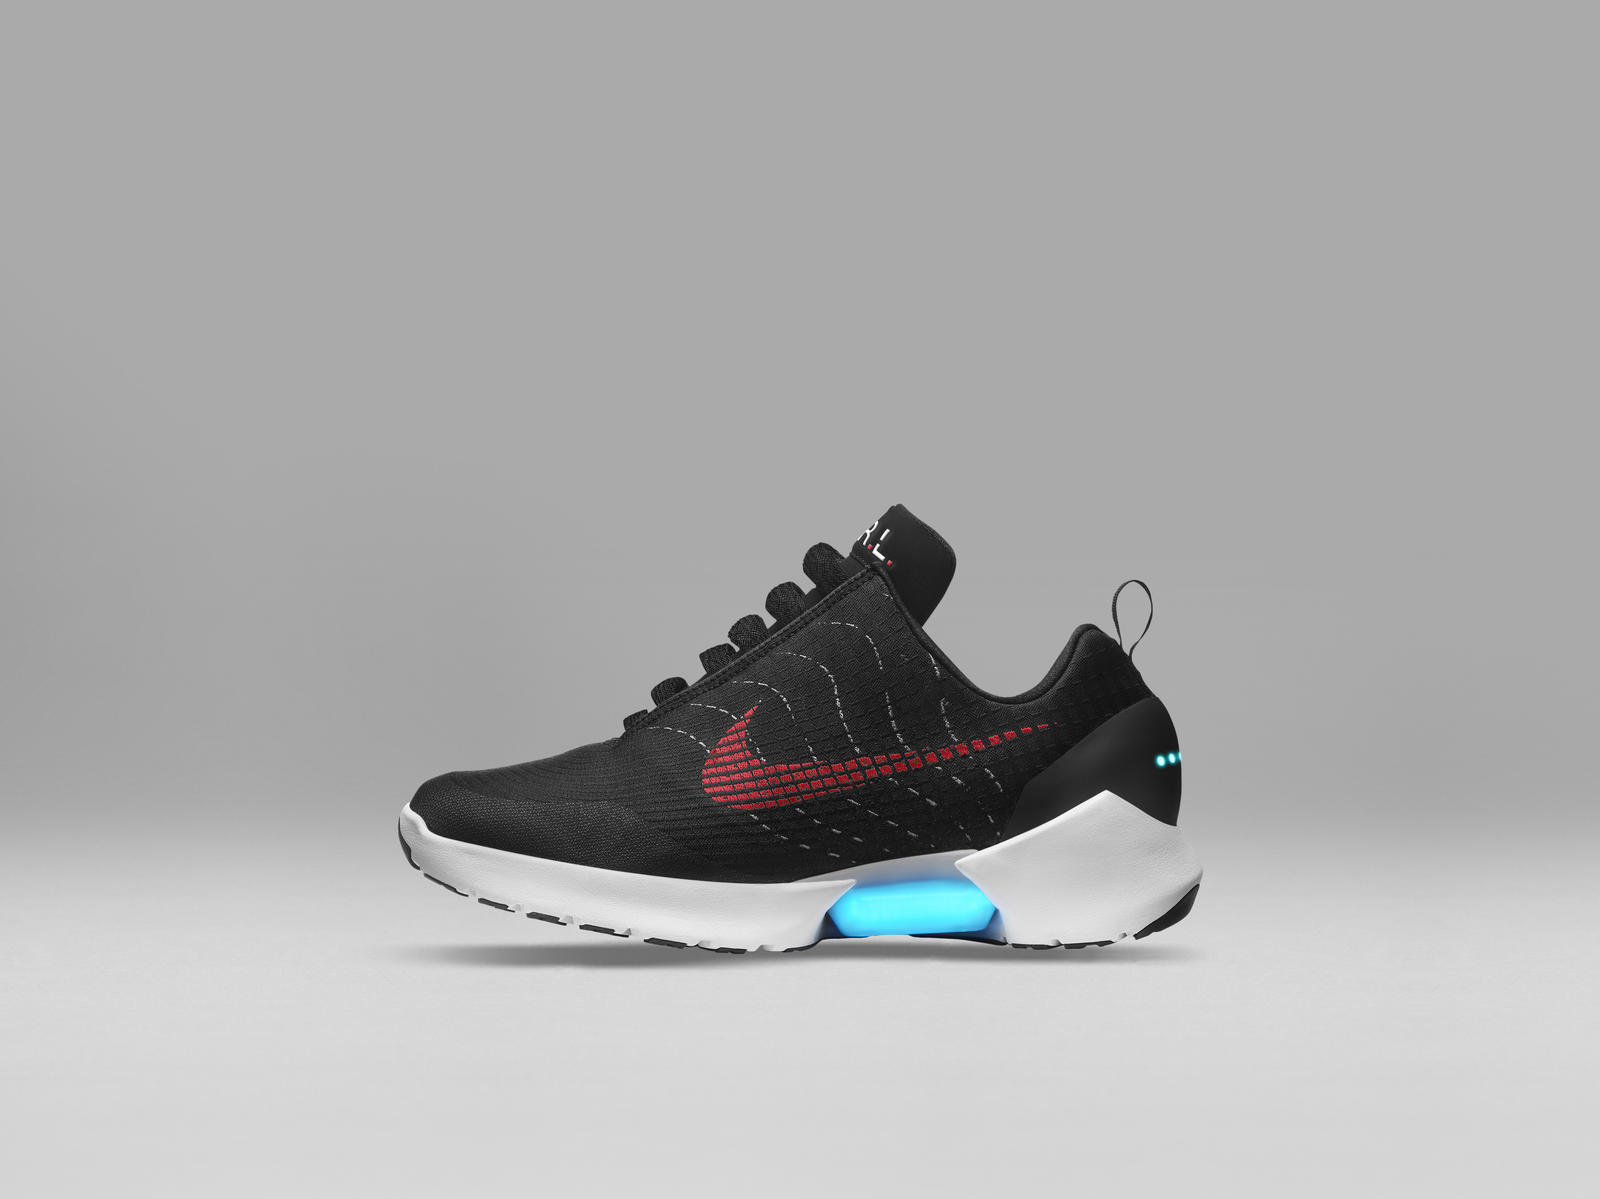 How to Get the Nike HyperAdapt 1 0  Share Image  The Nike